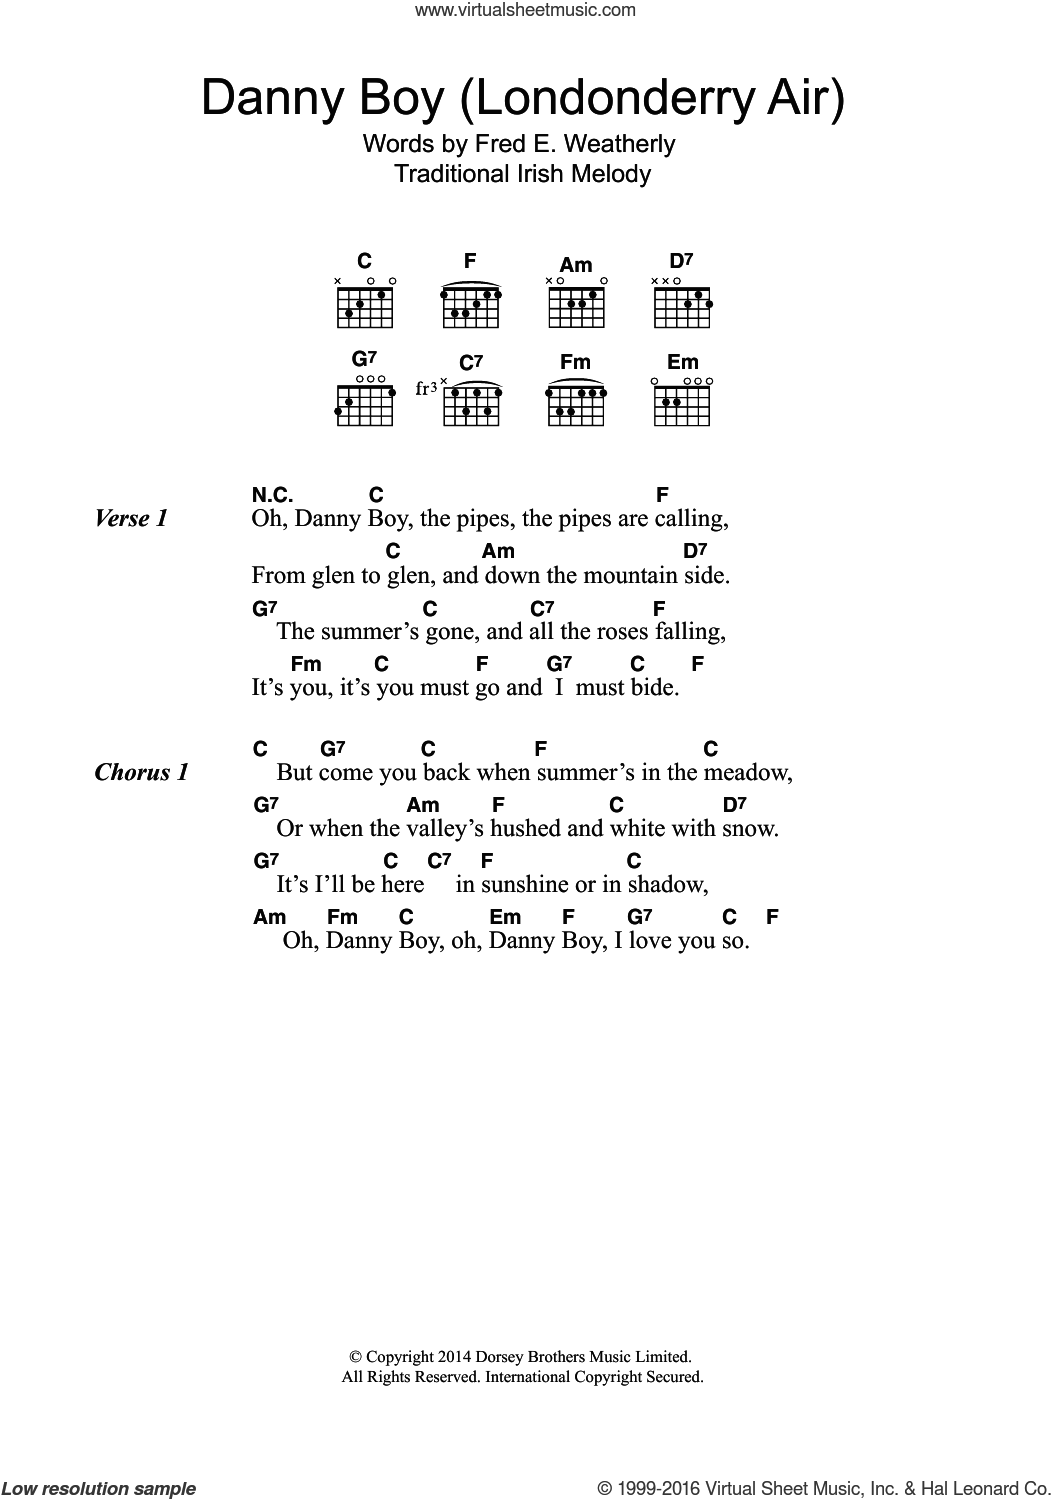 Danny Boy (Londonderry Air) sheet music for guitar (chords) by Fred E. Weatherly and Miscellaneous. Score Image Preview.